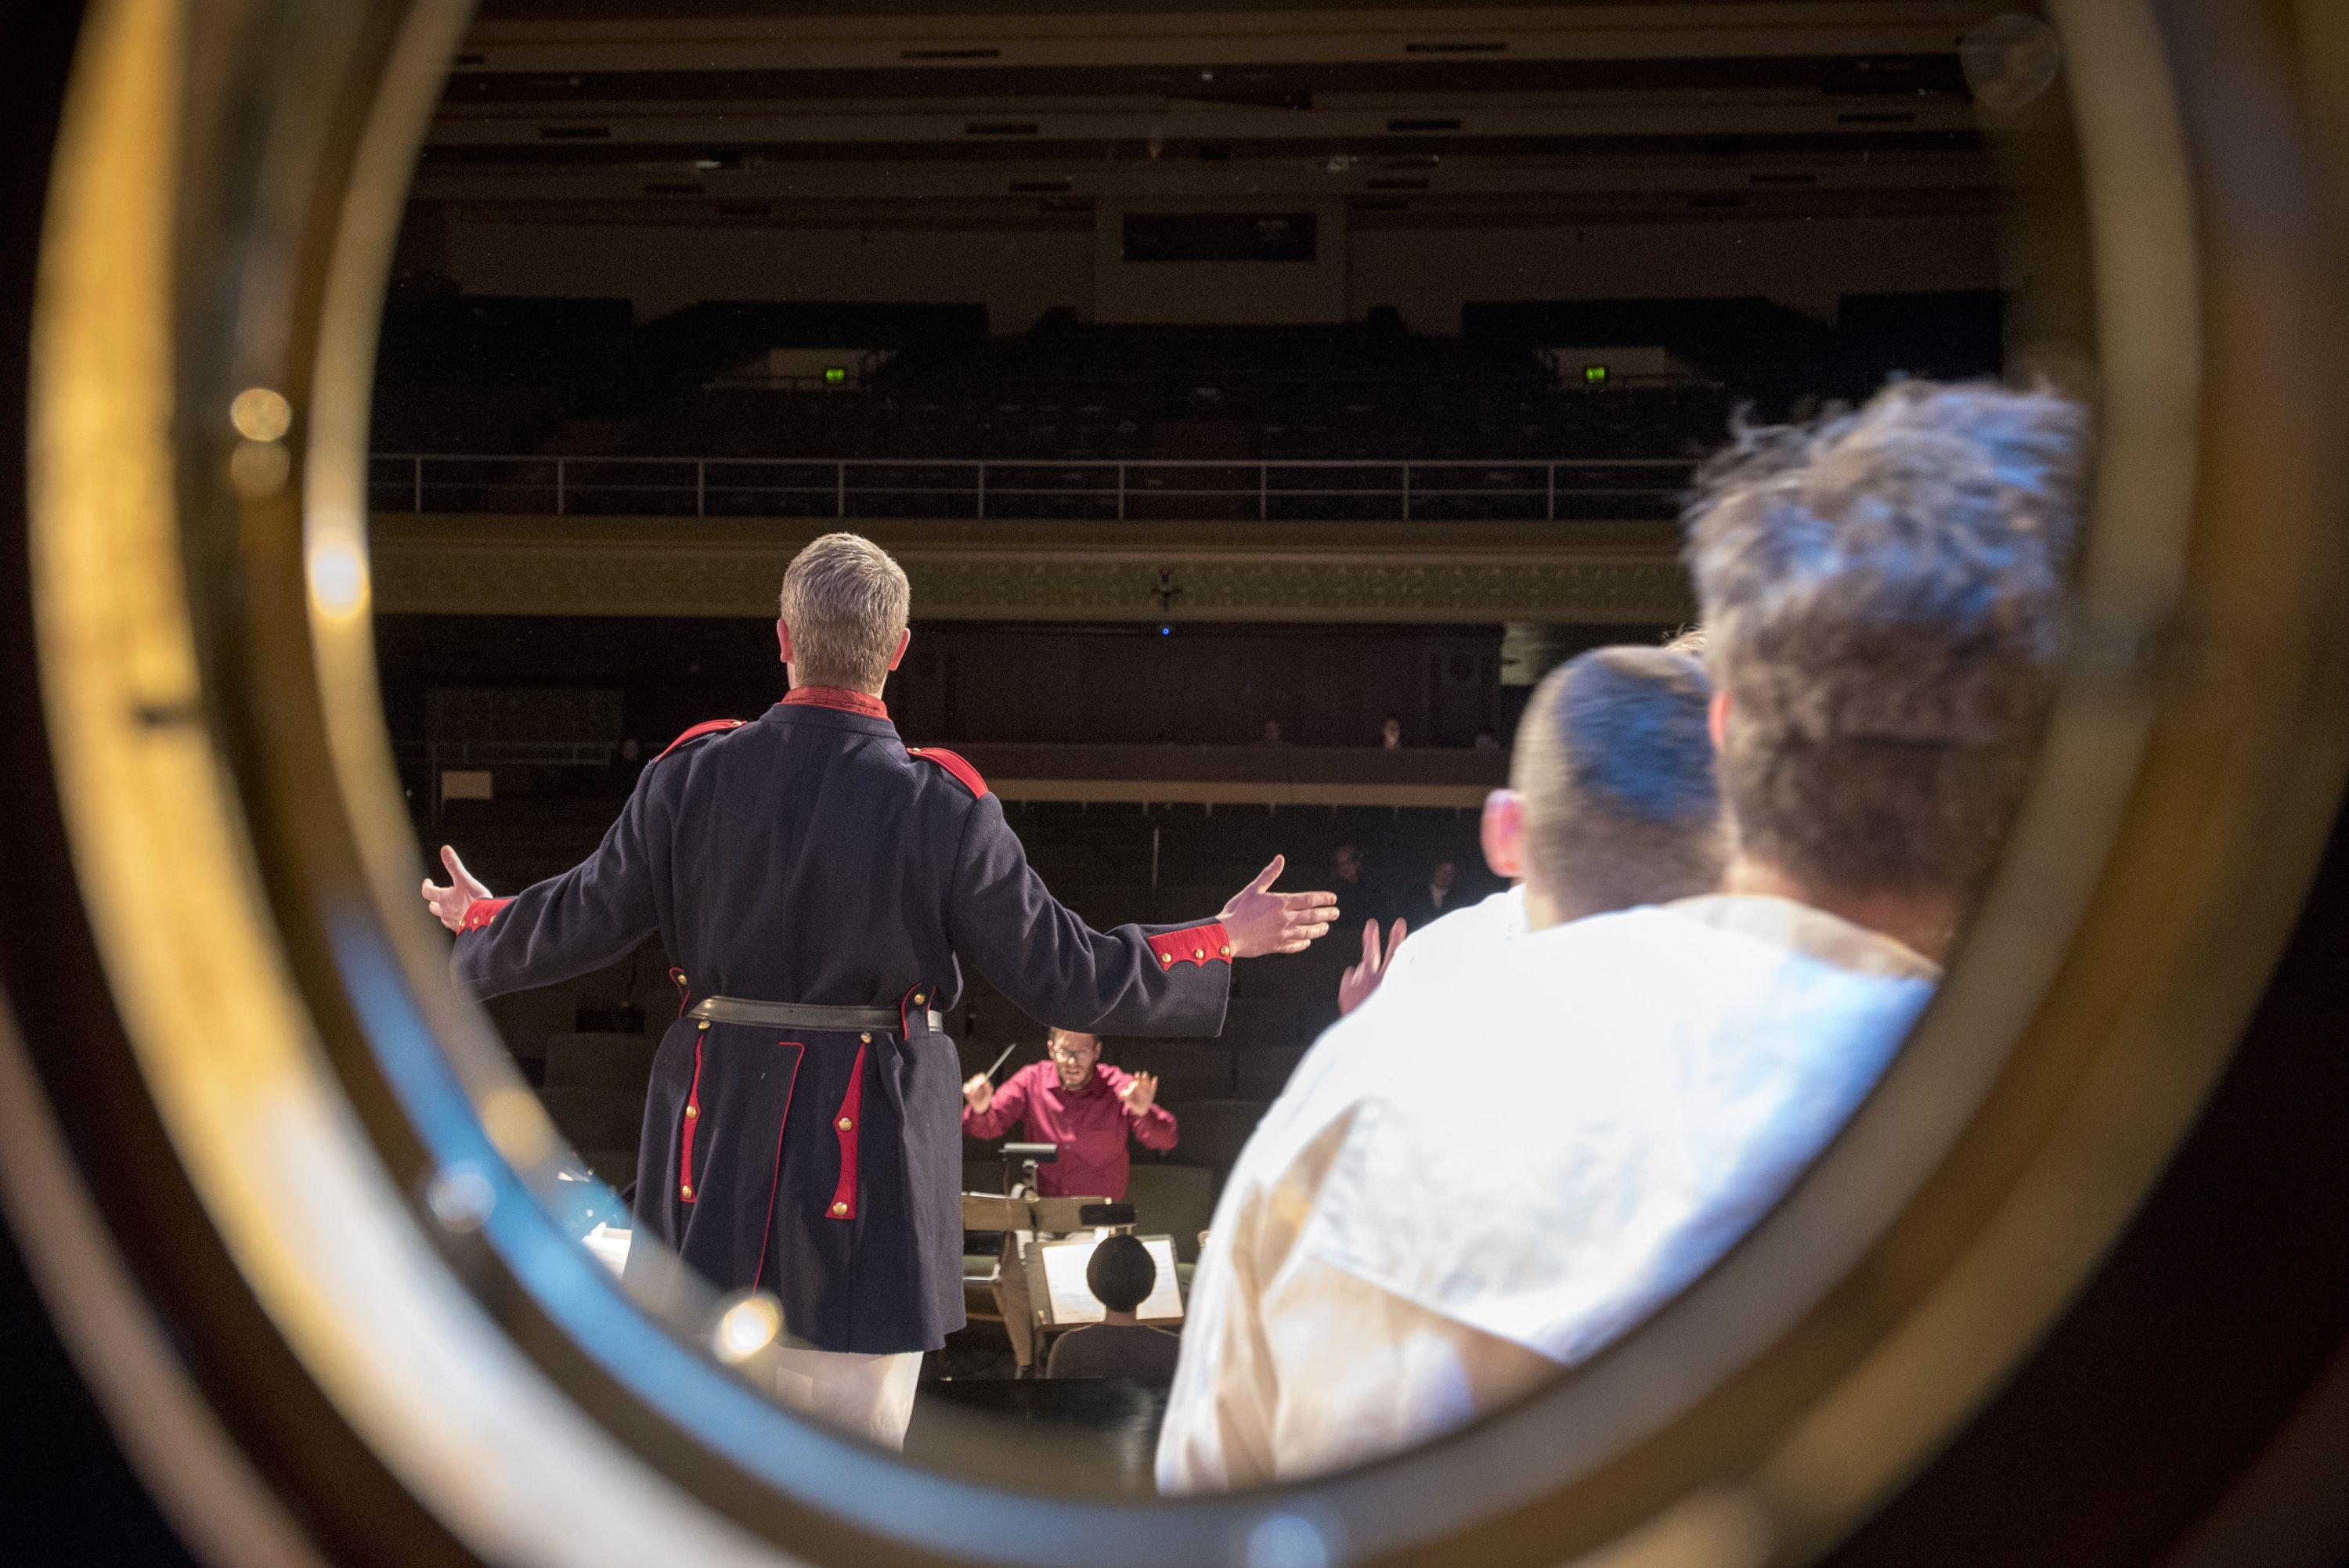 Photos taken from backstage at Jorgensen Center for the Performing Arts during the UConn Opera production of Gilbert & Sullivan's comic operetta H.M.S. Pinafore on Jan. 24, 2017. (Sean Flynn/UConn Photo)